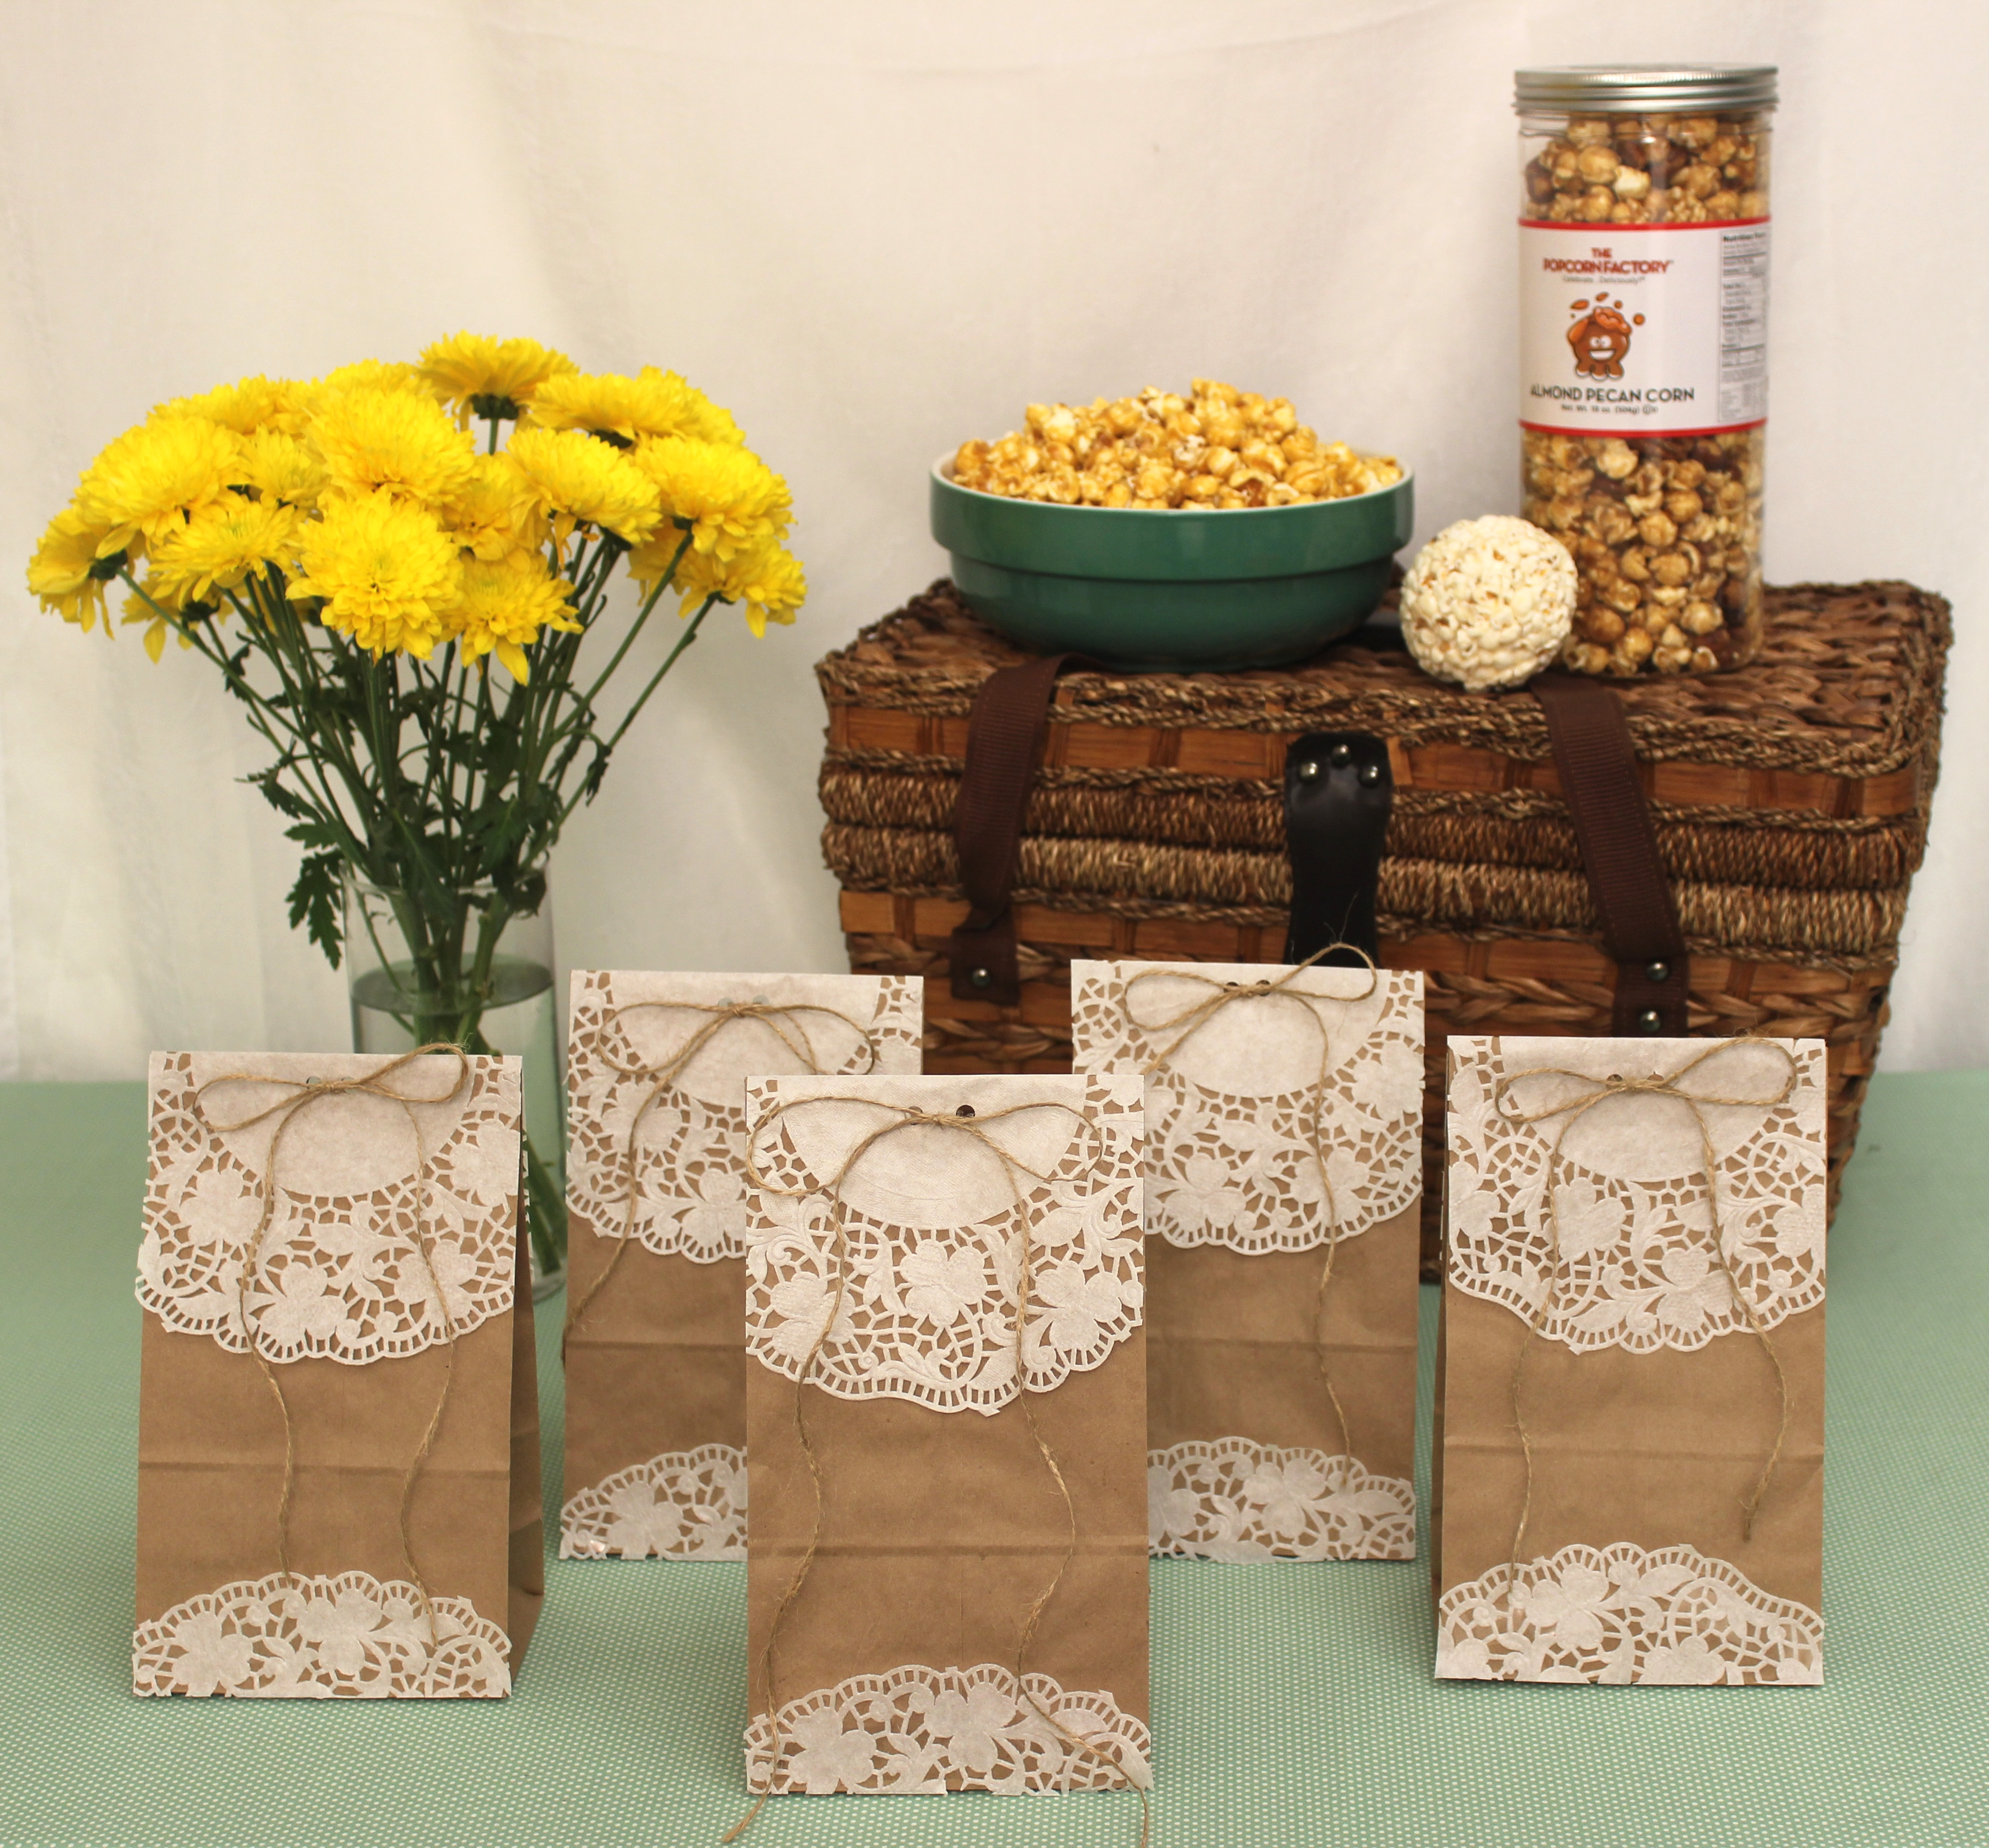 How to Make DIY Popcorn Goody Bags for Spring